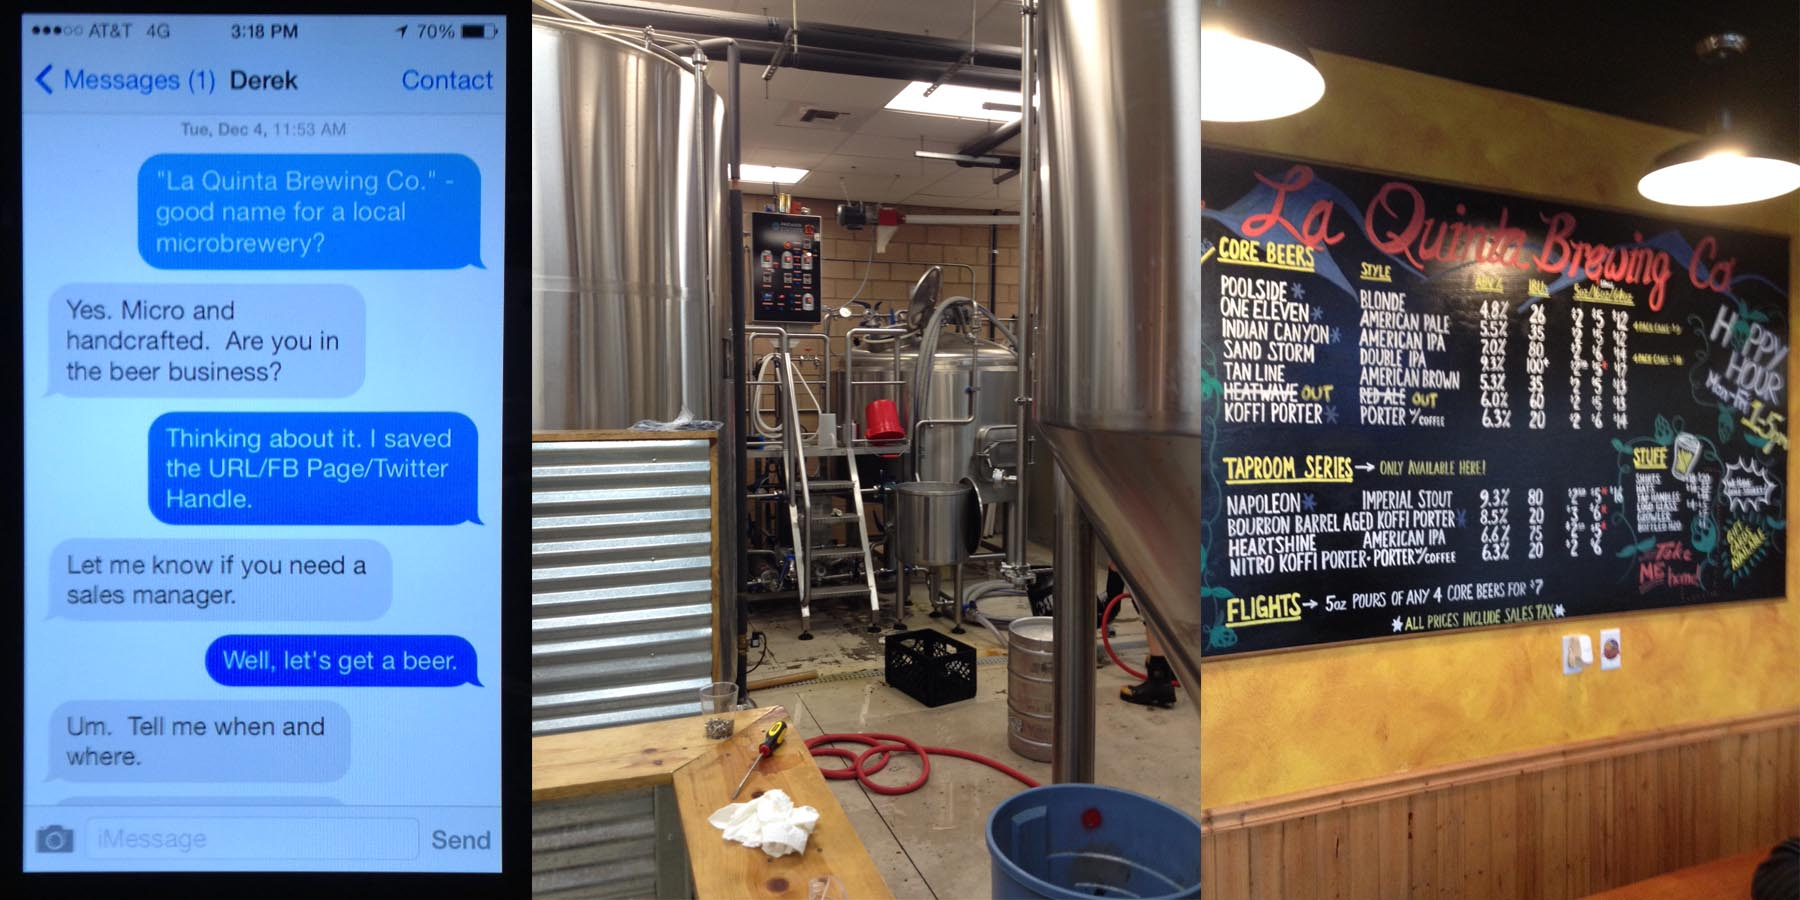 The phone pic is from slideshow on their taproom TV and is the text message conversation of how it all began.